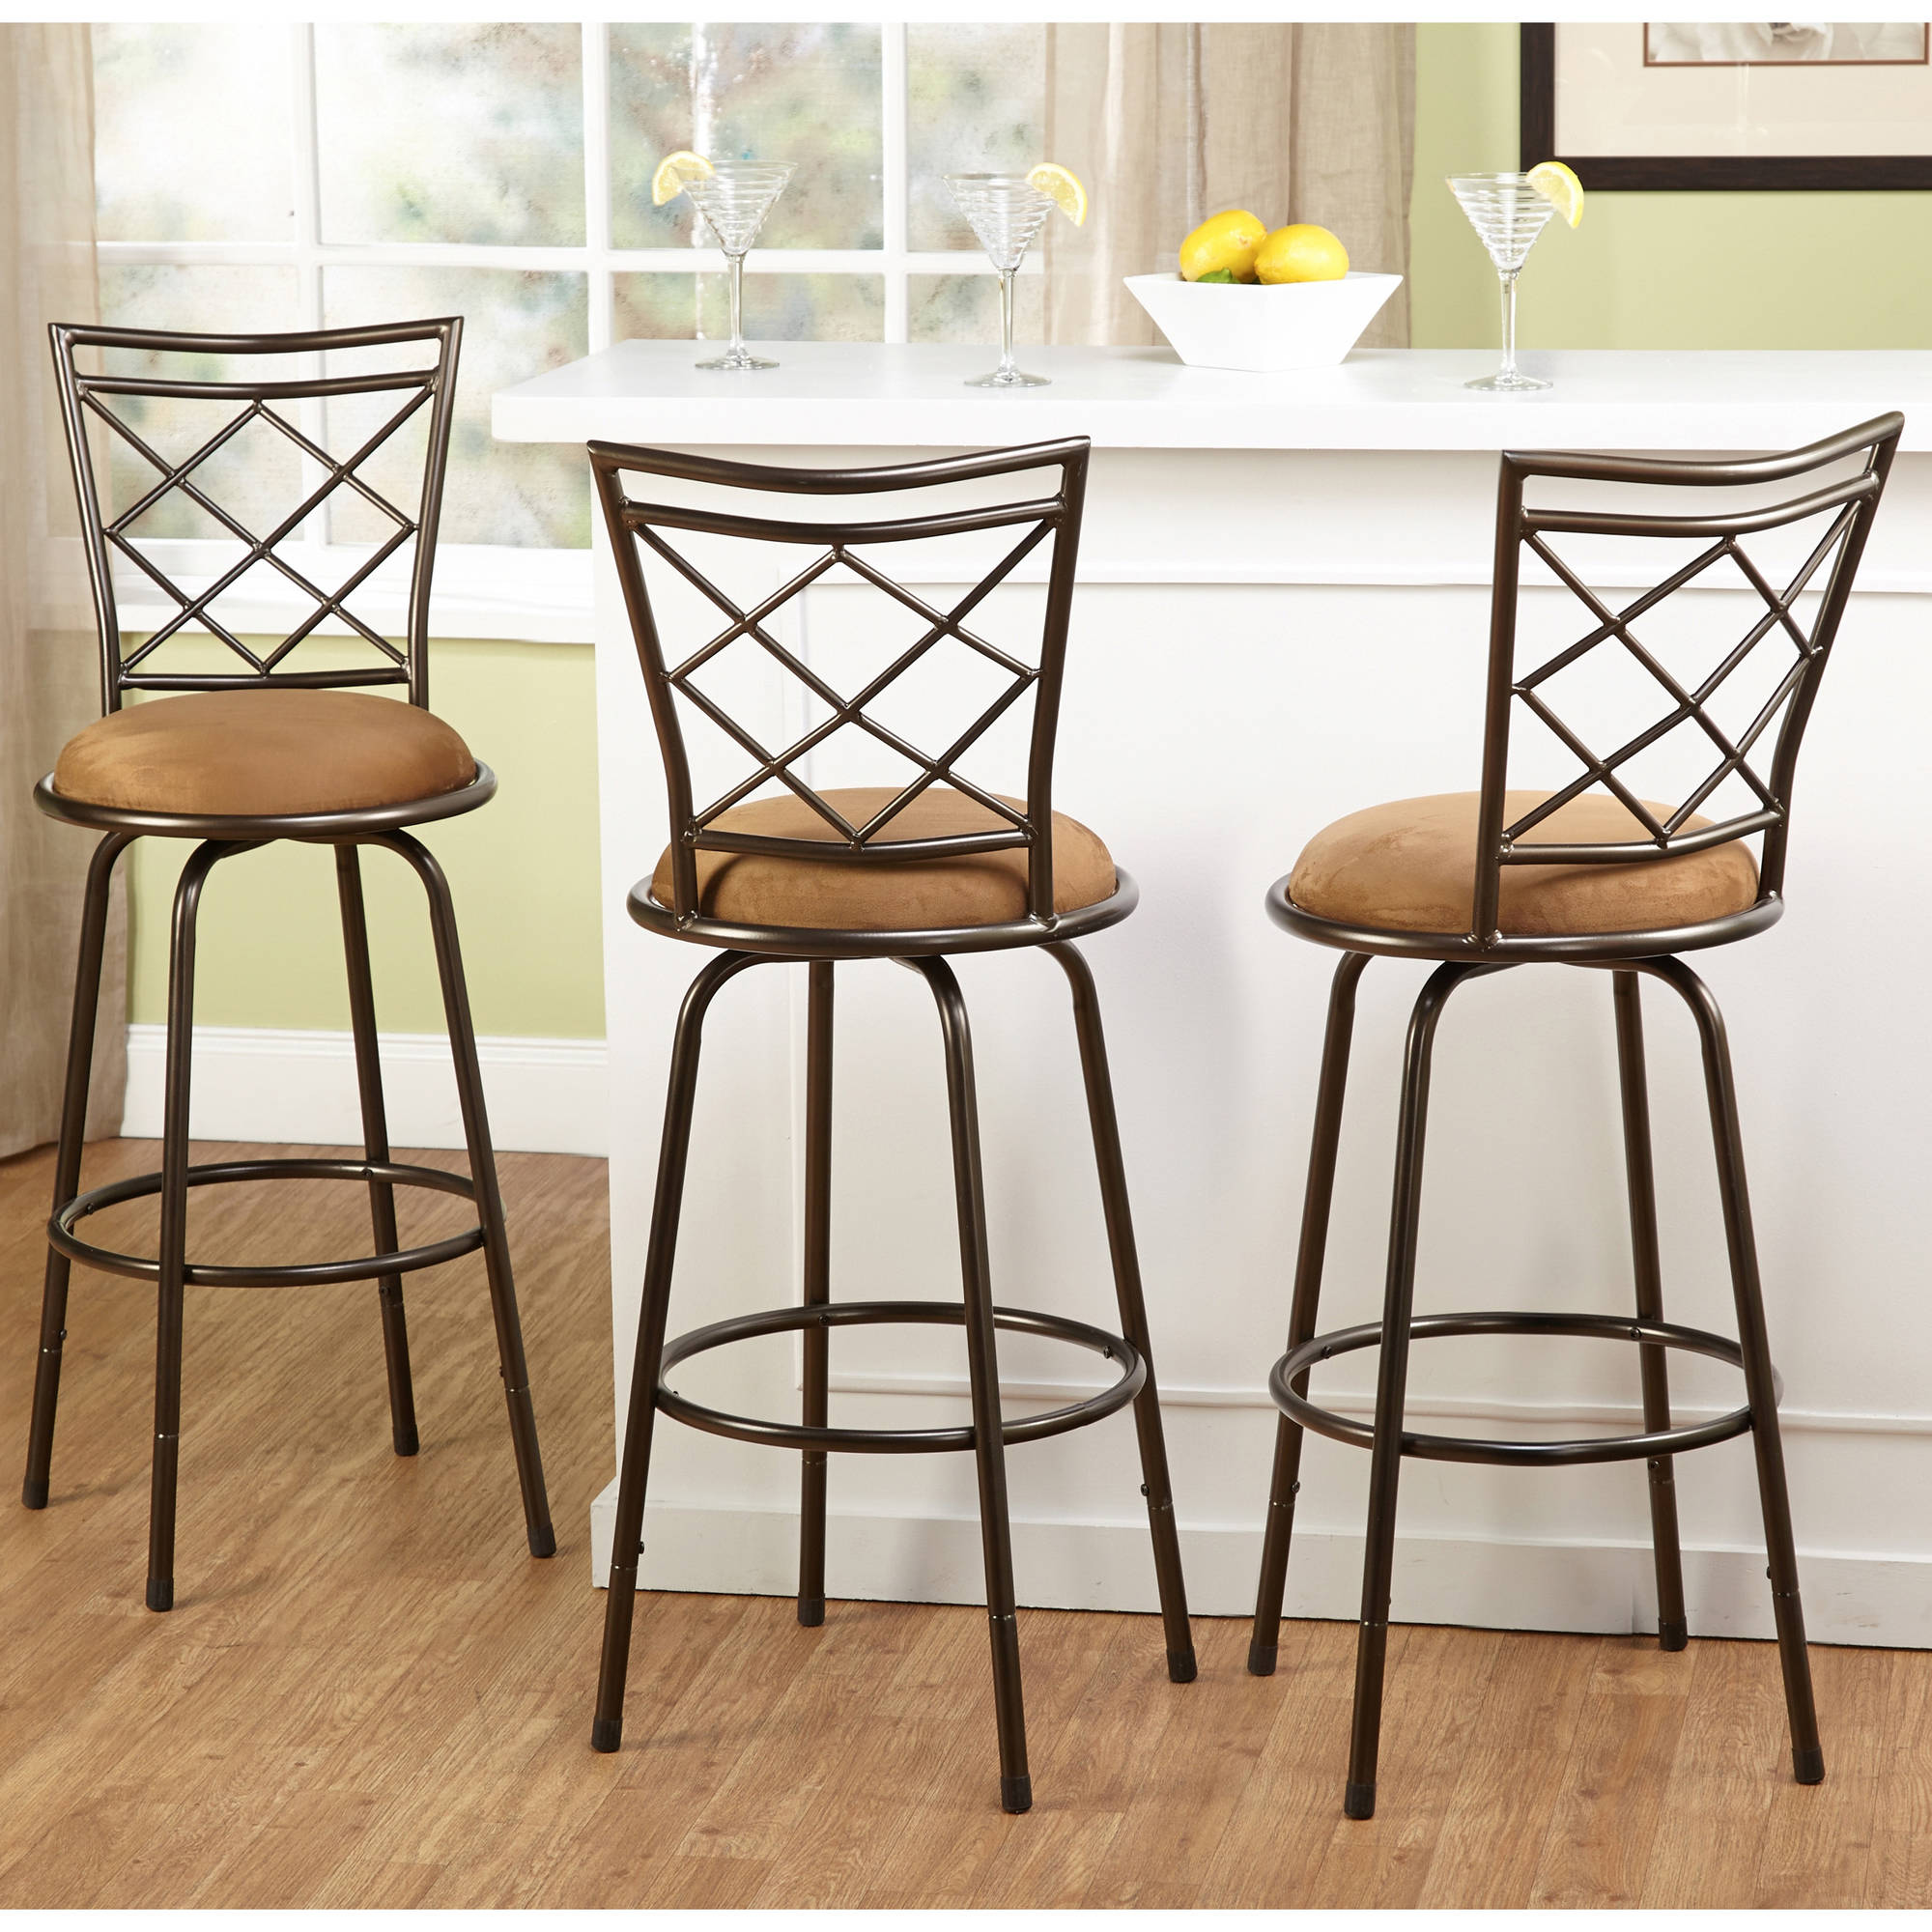 TMS Avery Adjustable-Height Bar Stool, Multiple Colors, Set of 3 -  Walmart.com